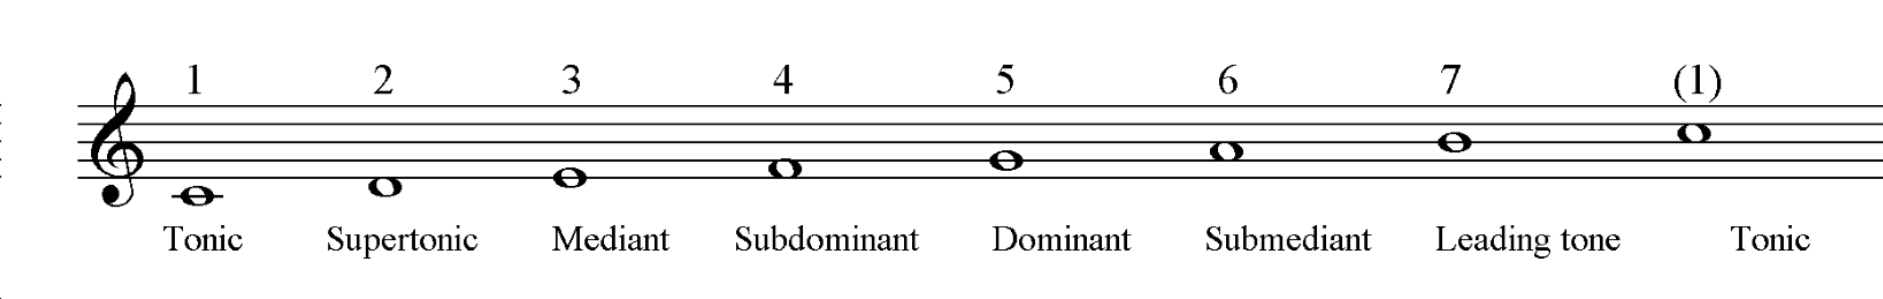 Enharmonic pitches